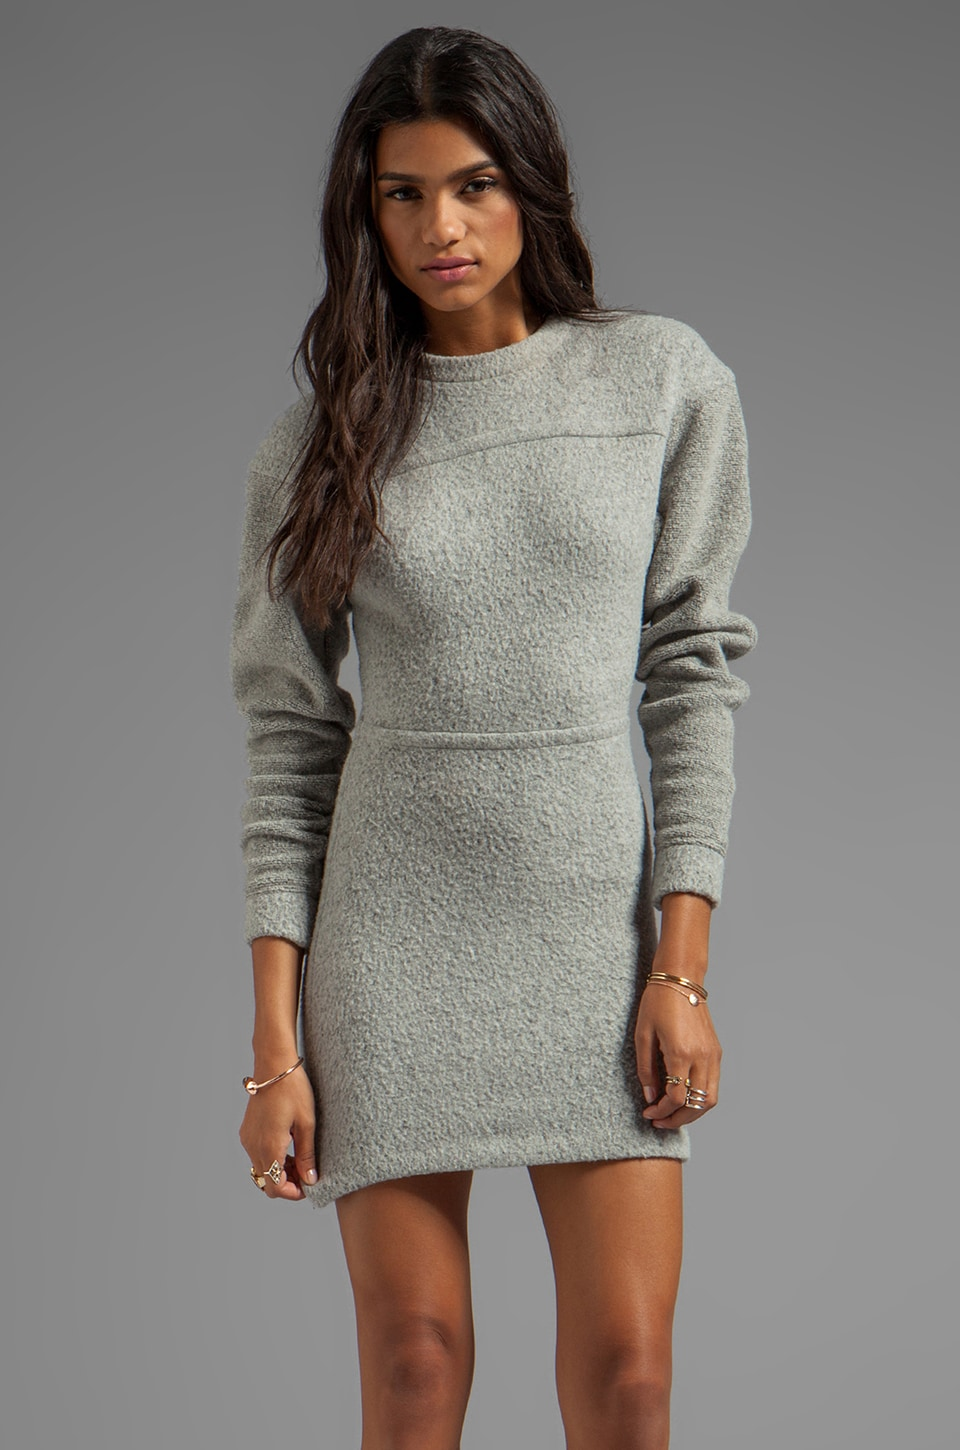 T by Alexander Wang Brushed Wool Sweatshirt Dress in Light Heather Grey